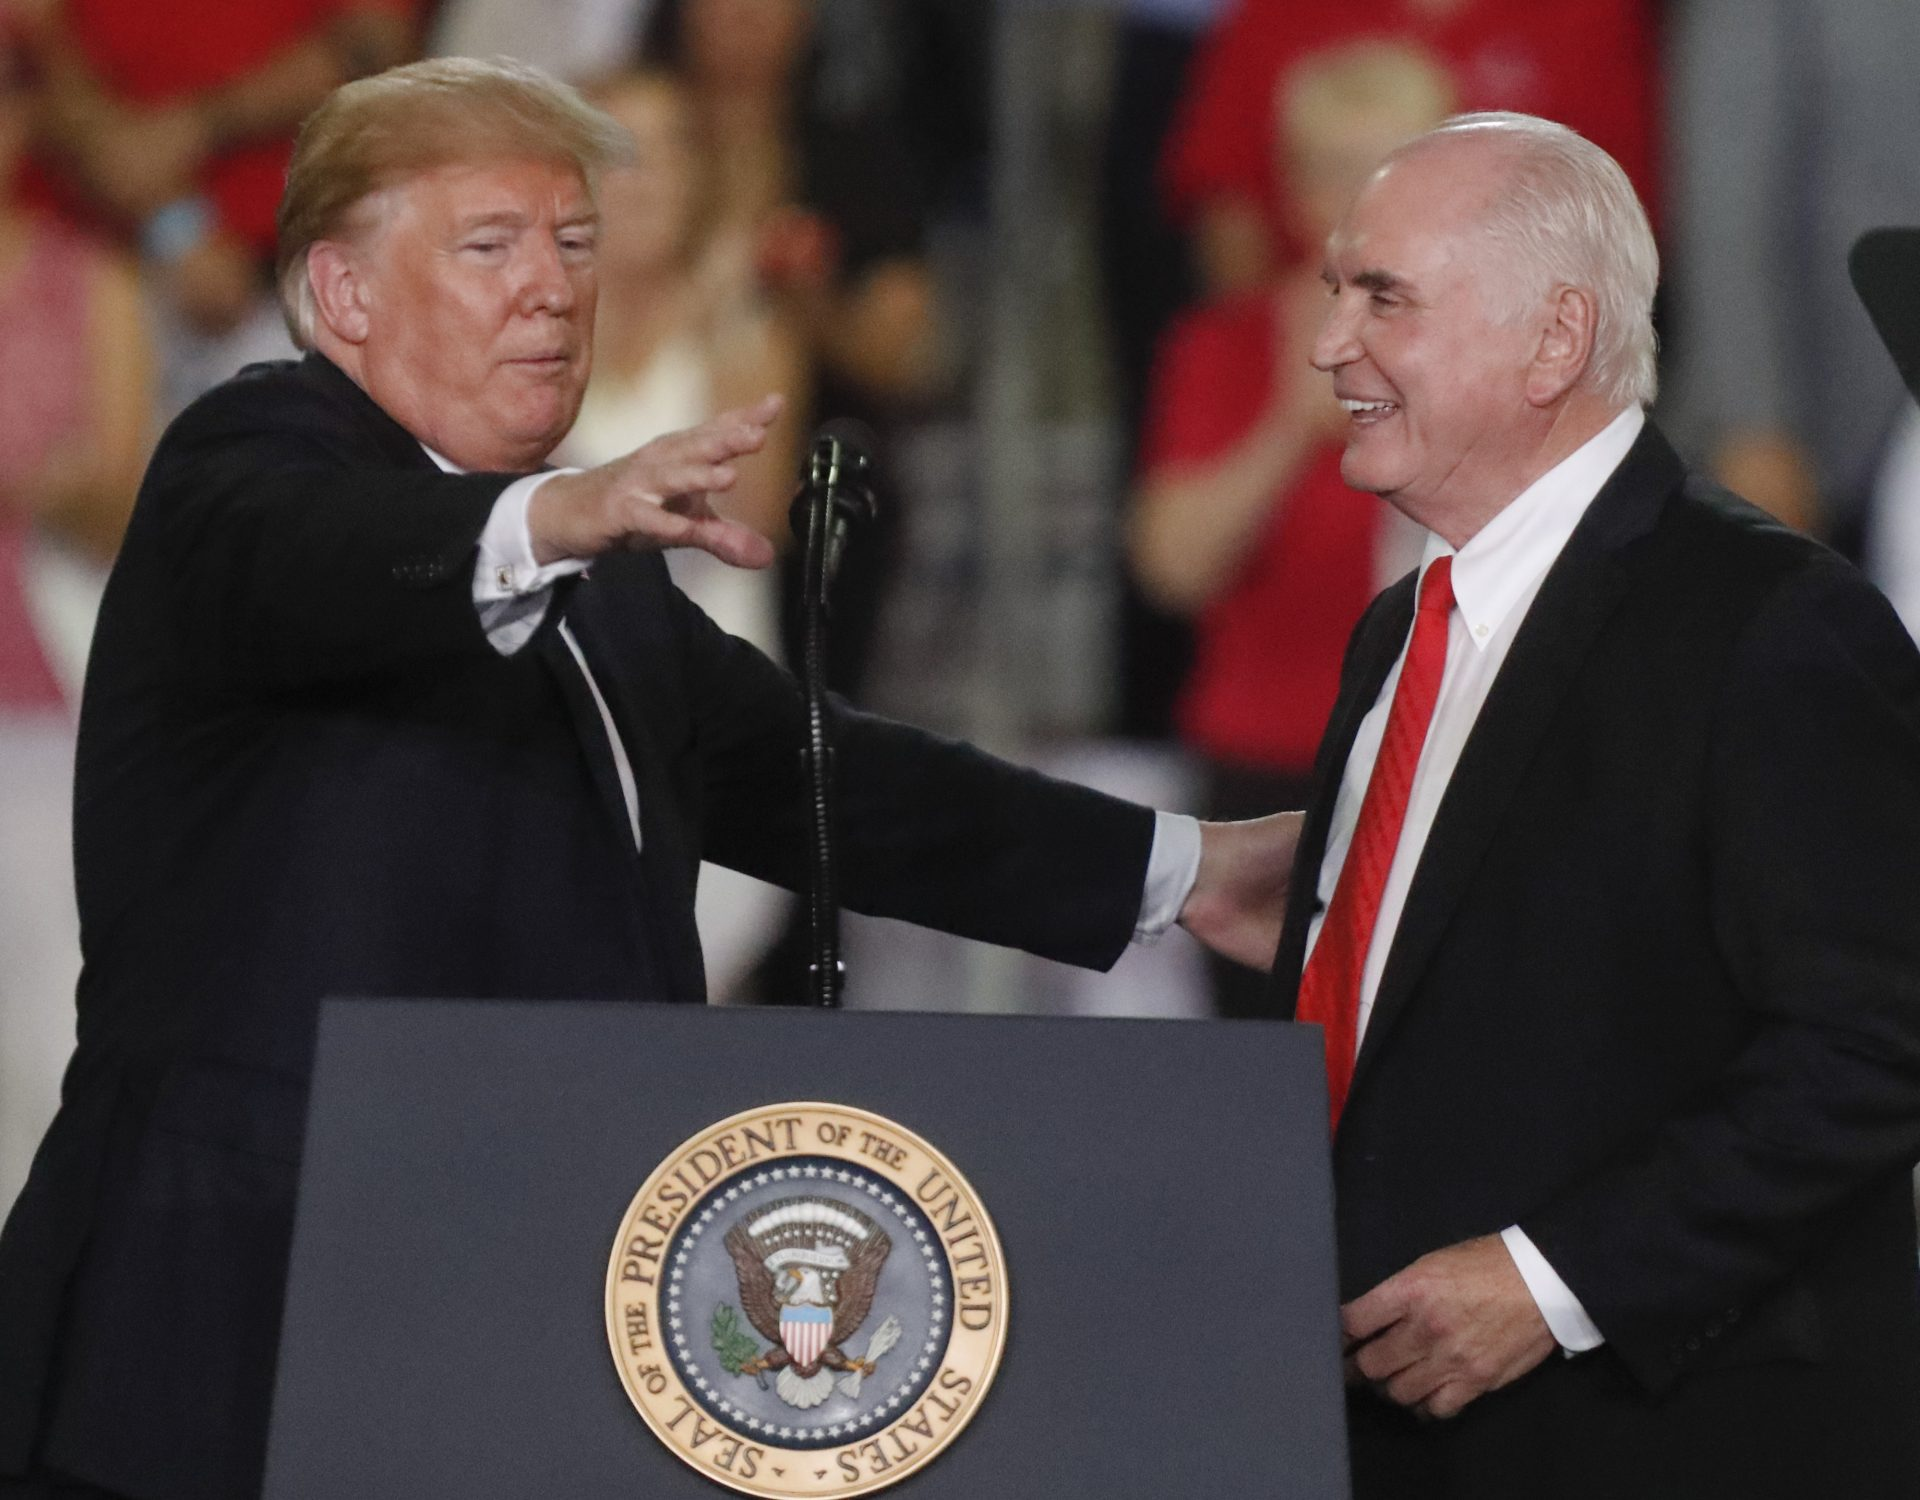 FILE PHOTO: President Donald Trump, left introduces U.S. Congressman Mike Kelly at a rally endorsing the Republican ticket in Pennsylvania on Wednesday, Oct. 10, 2018 in Erie, Pa.